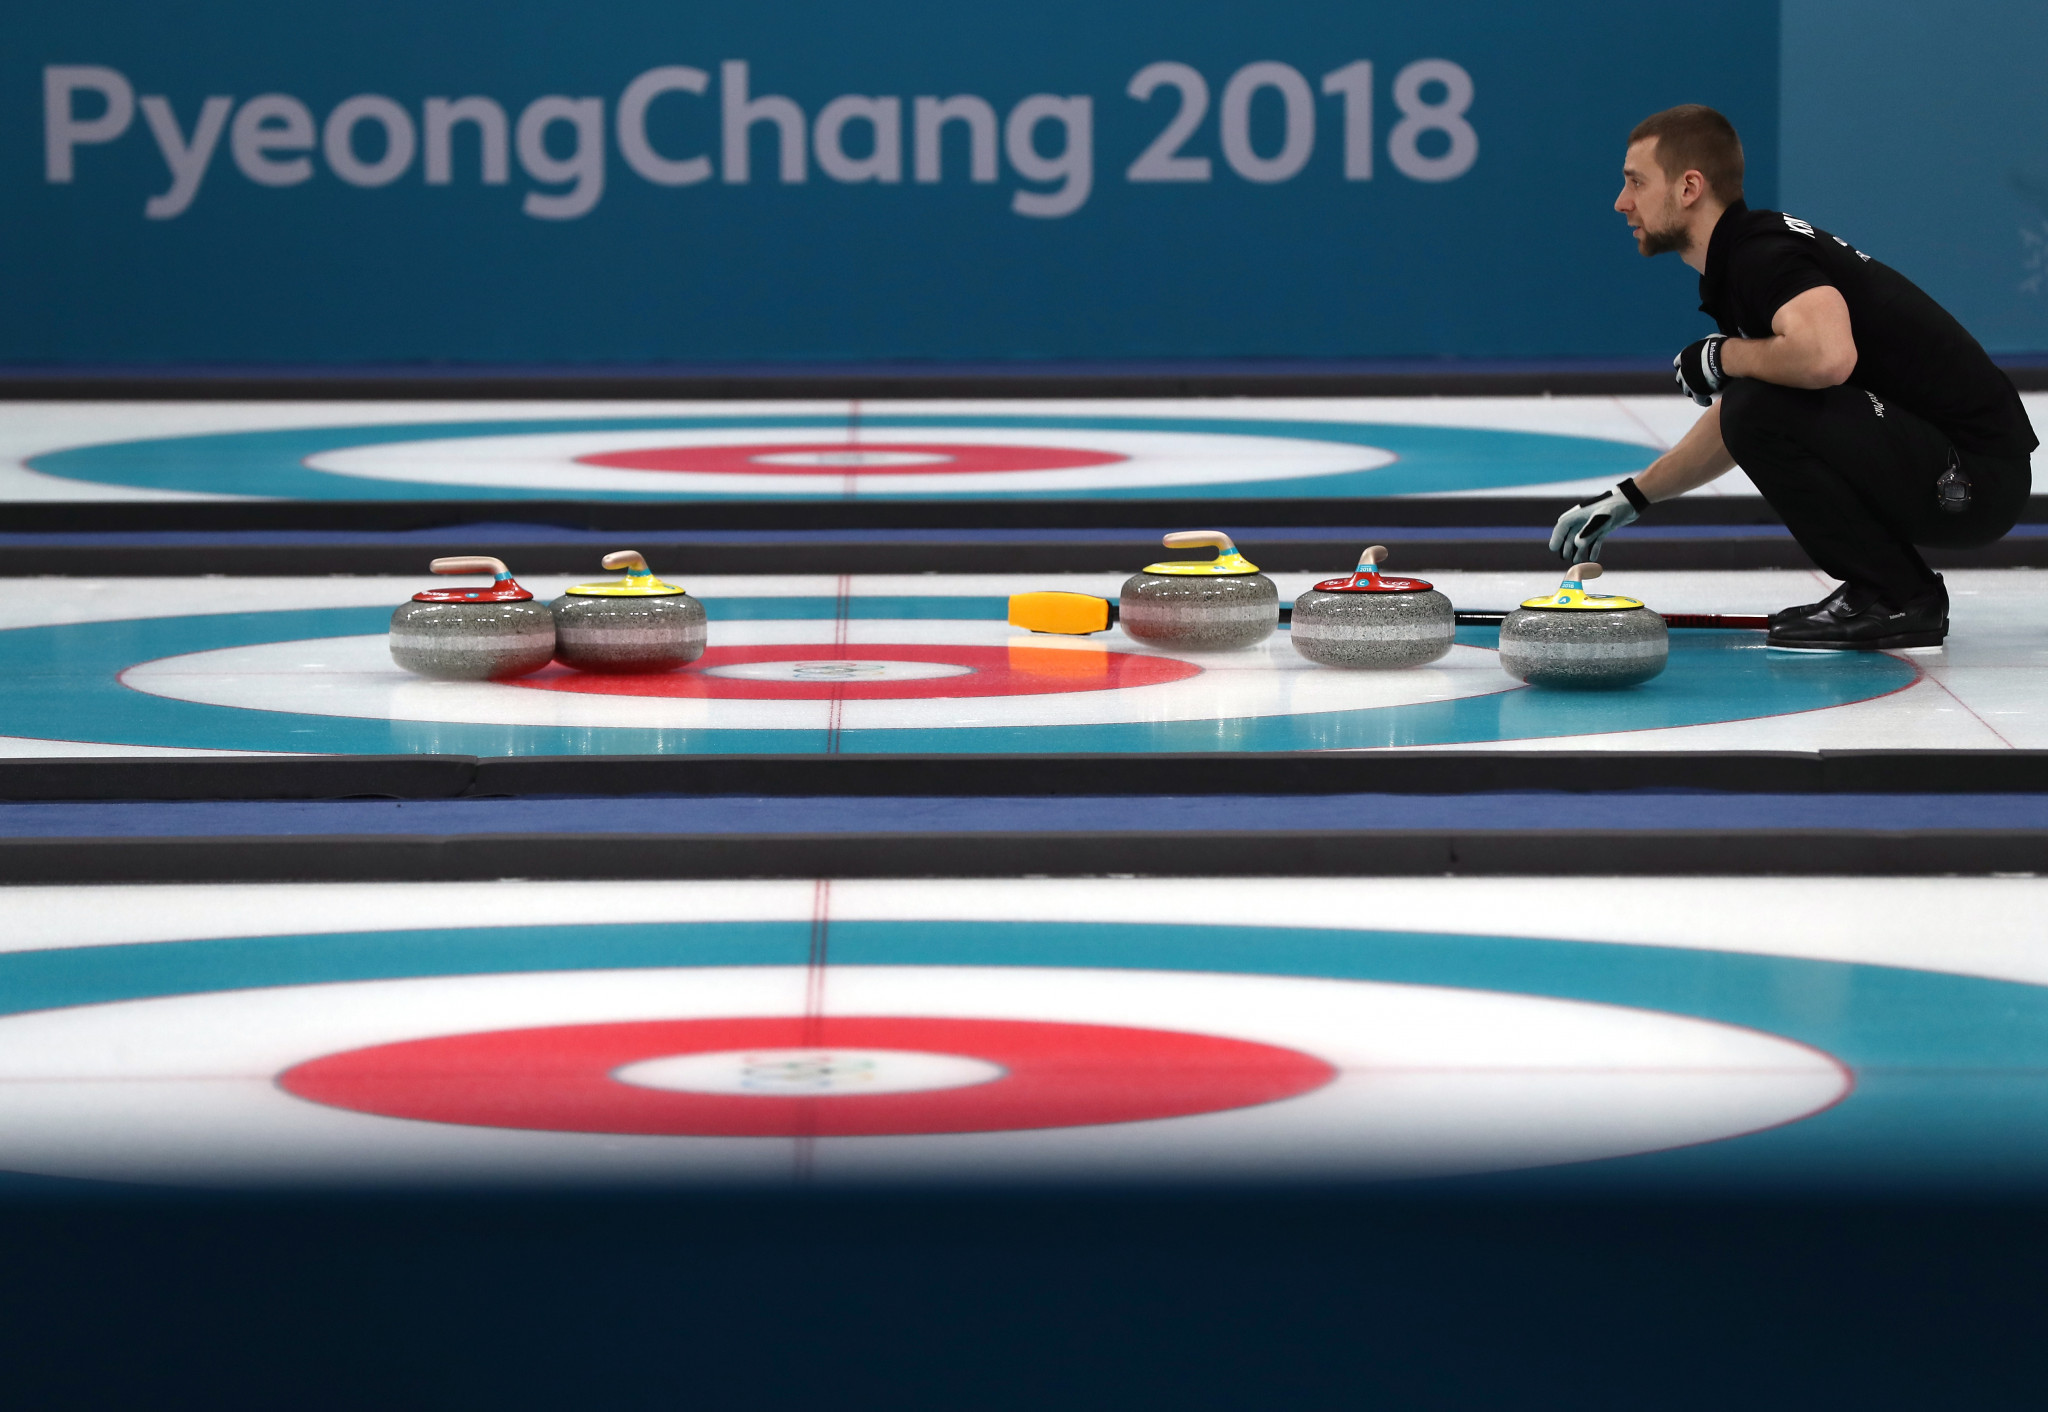 The OAR curling bronze medallist has been confirmed as failing drugs tests ©Getty Images